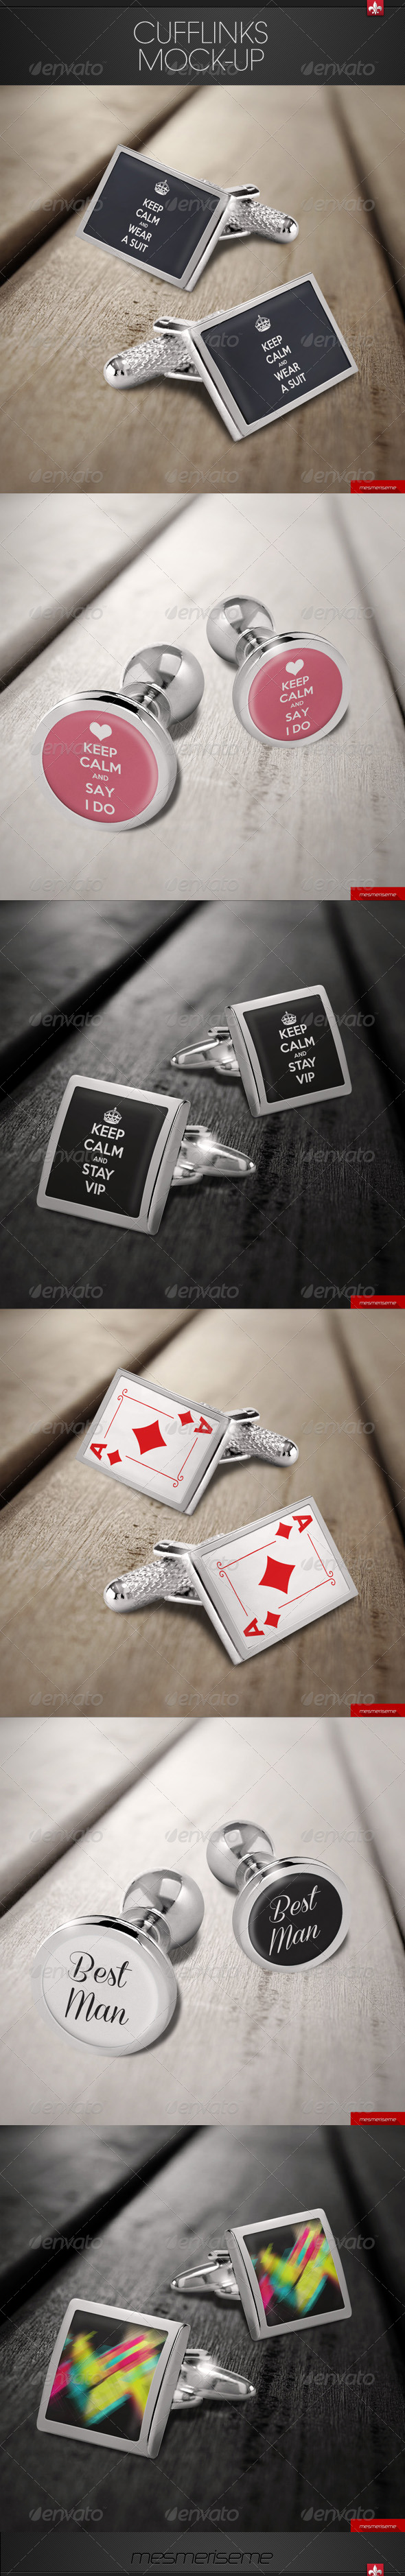 GraphicRiver Cufflinks Mock-up 7674734